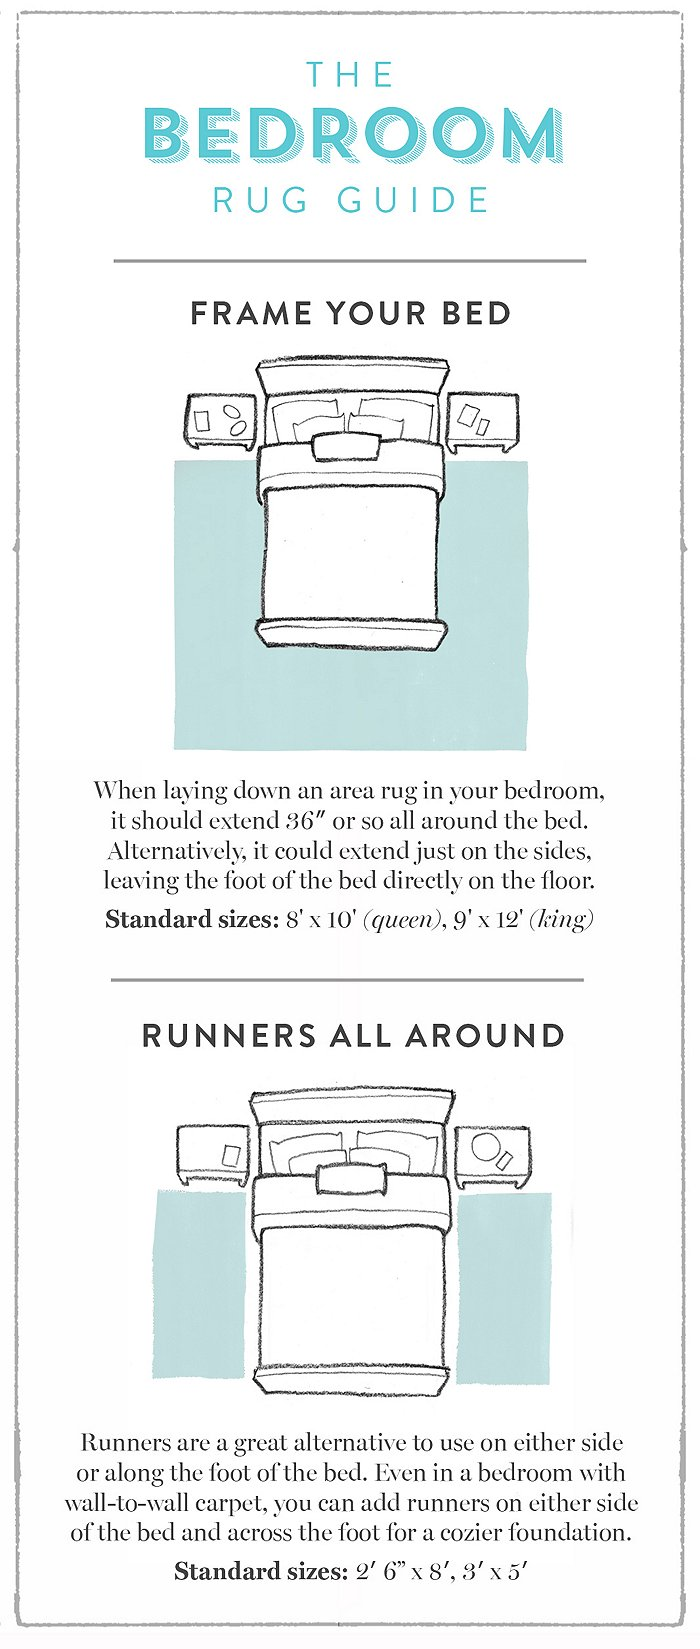 A Room-by-Room Guide to Rug Sizes